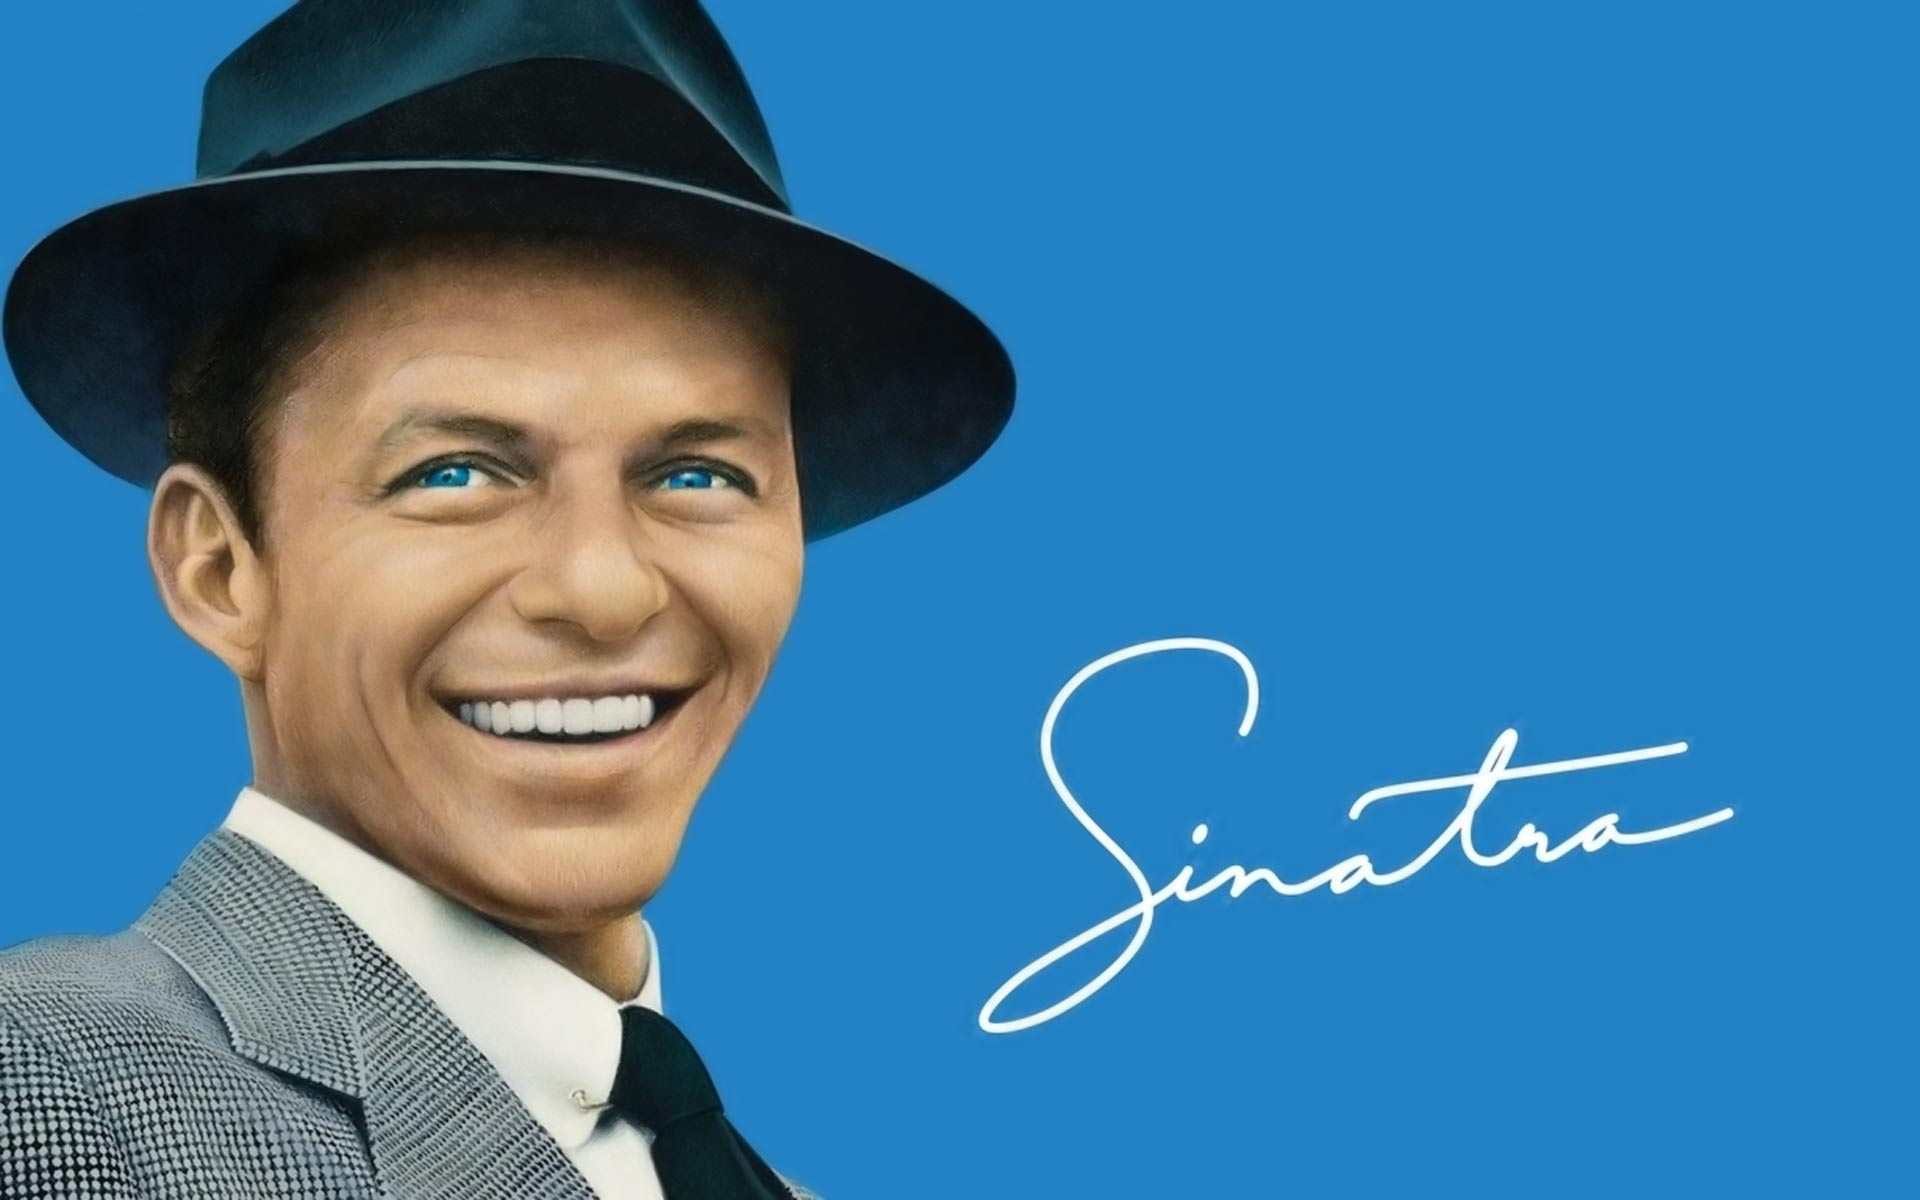 frank sinatra Full HD Wallpaper and Achtergrond ...